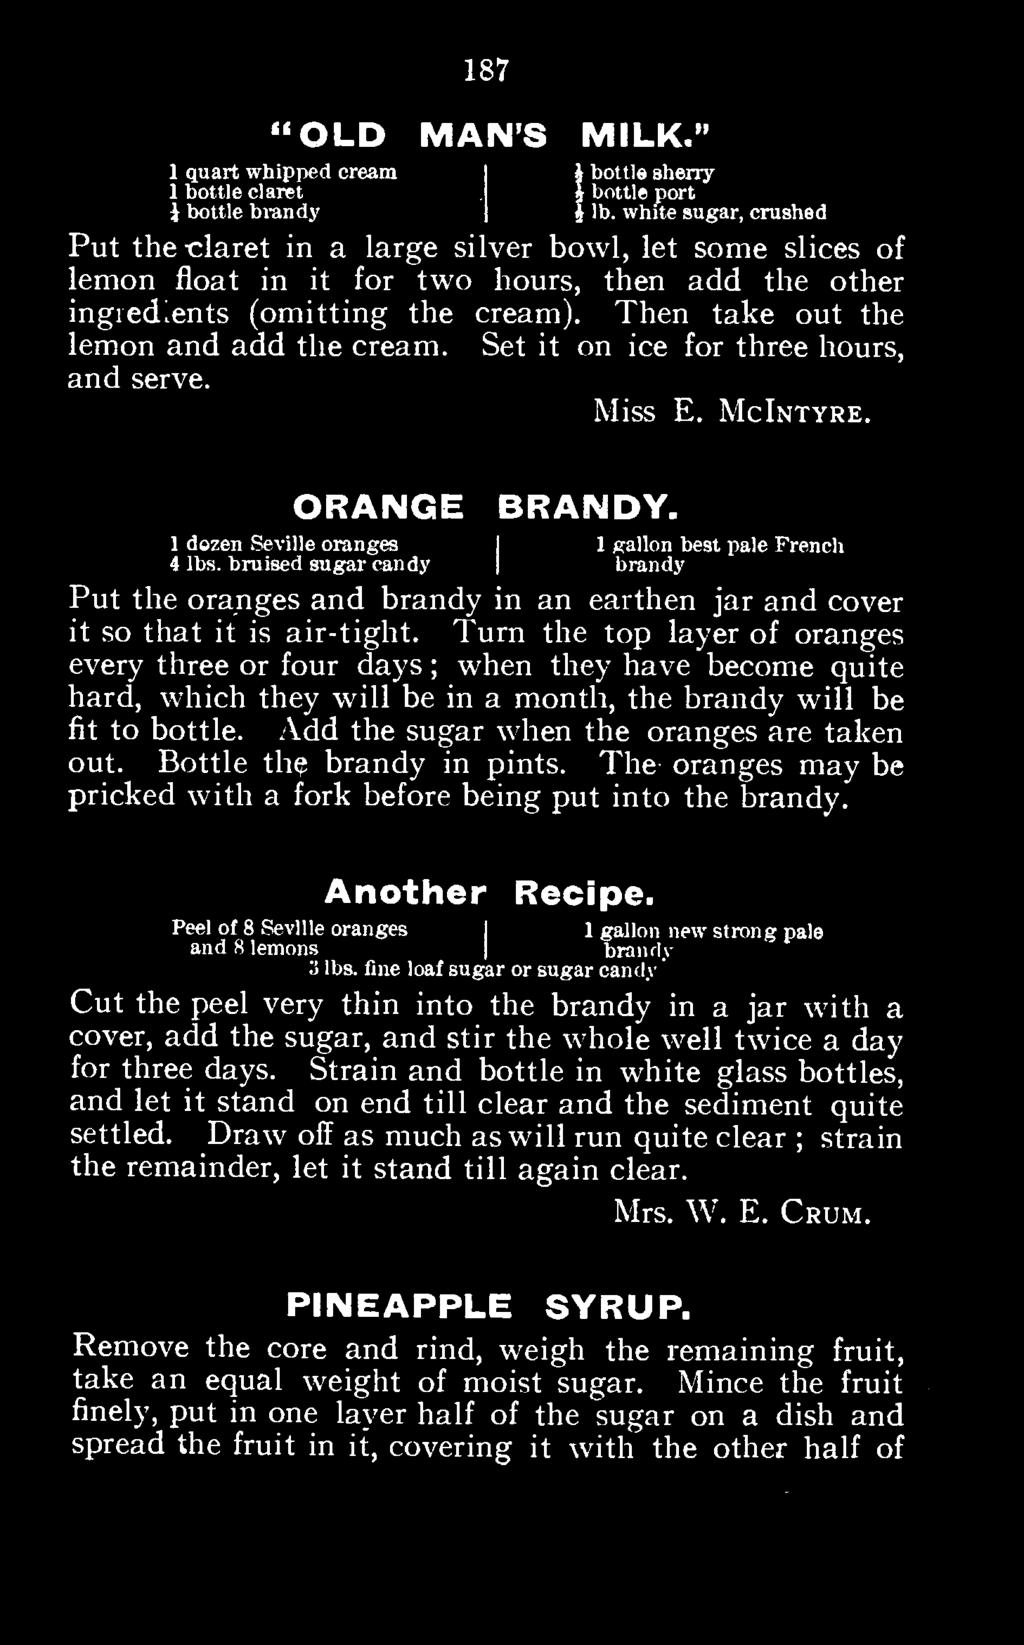 Turn the top layer of oranges every three or four days; when they have become quite hard, which they will be in a month, the brandy will be fit to bottle. Add the sugar when the oranges are taken out.